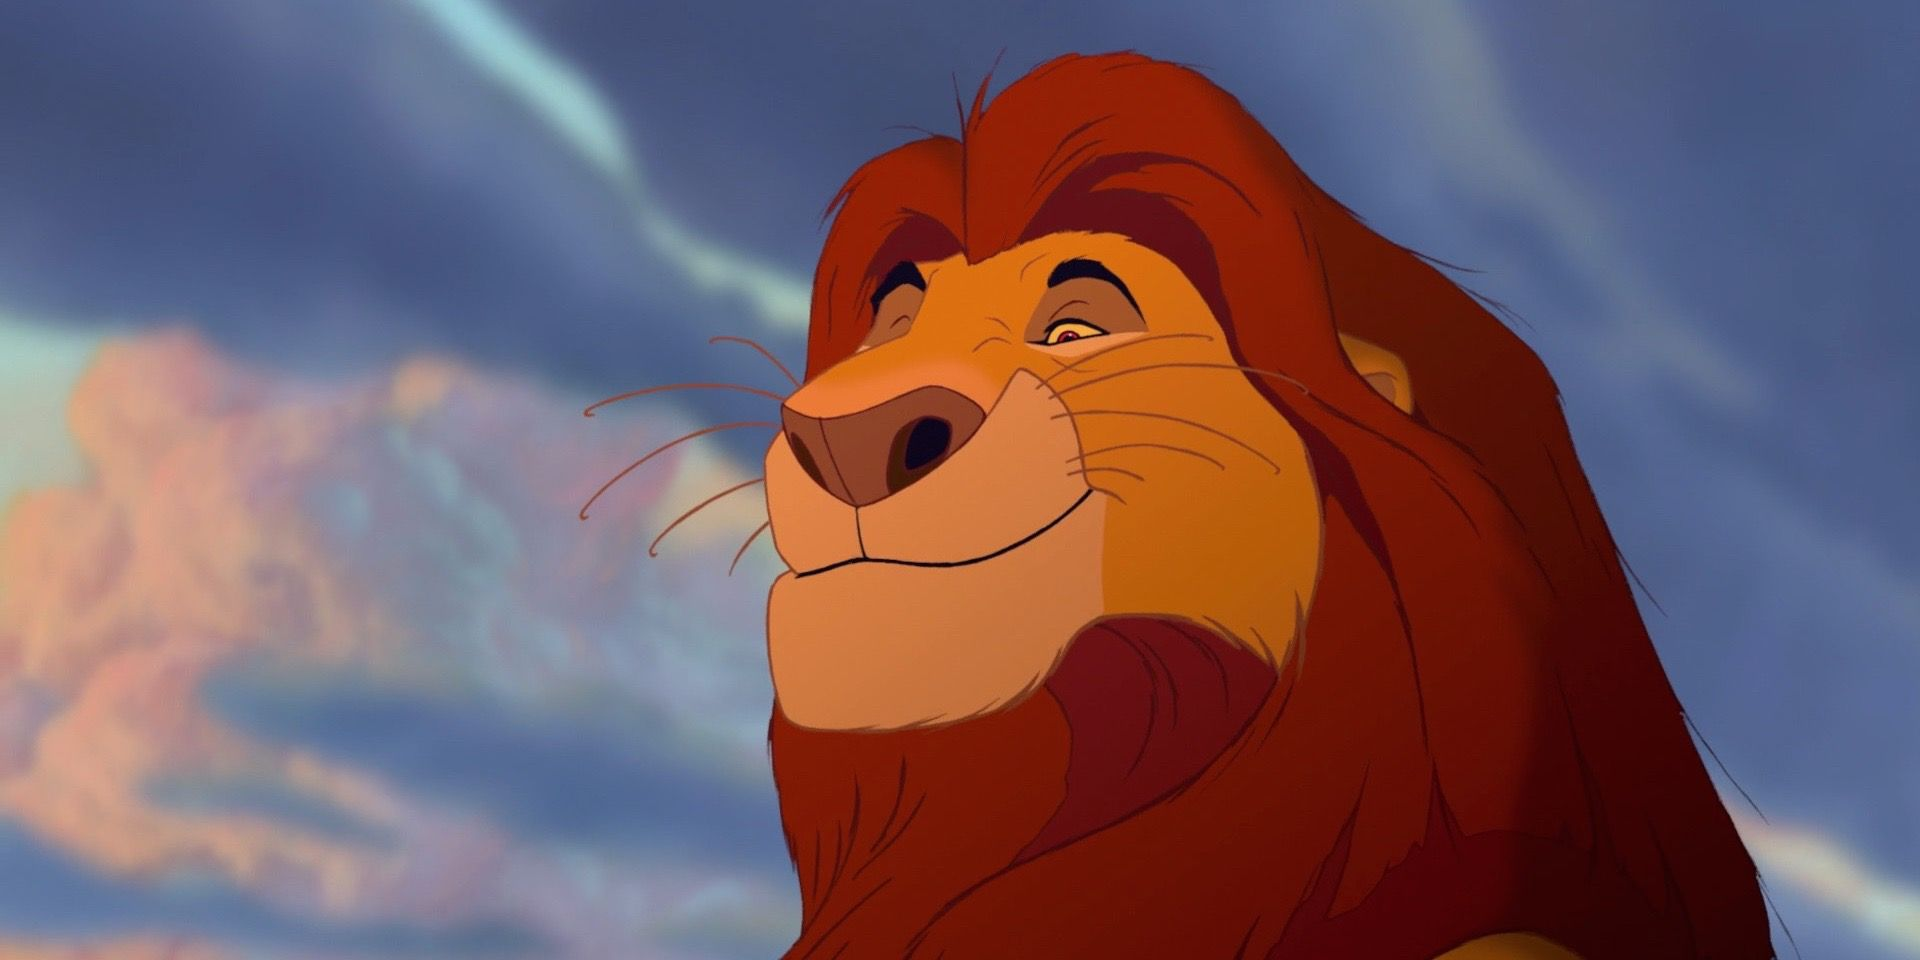 lion king remake photos of mufasa are not real